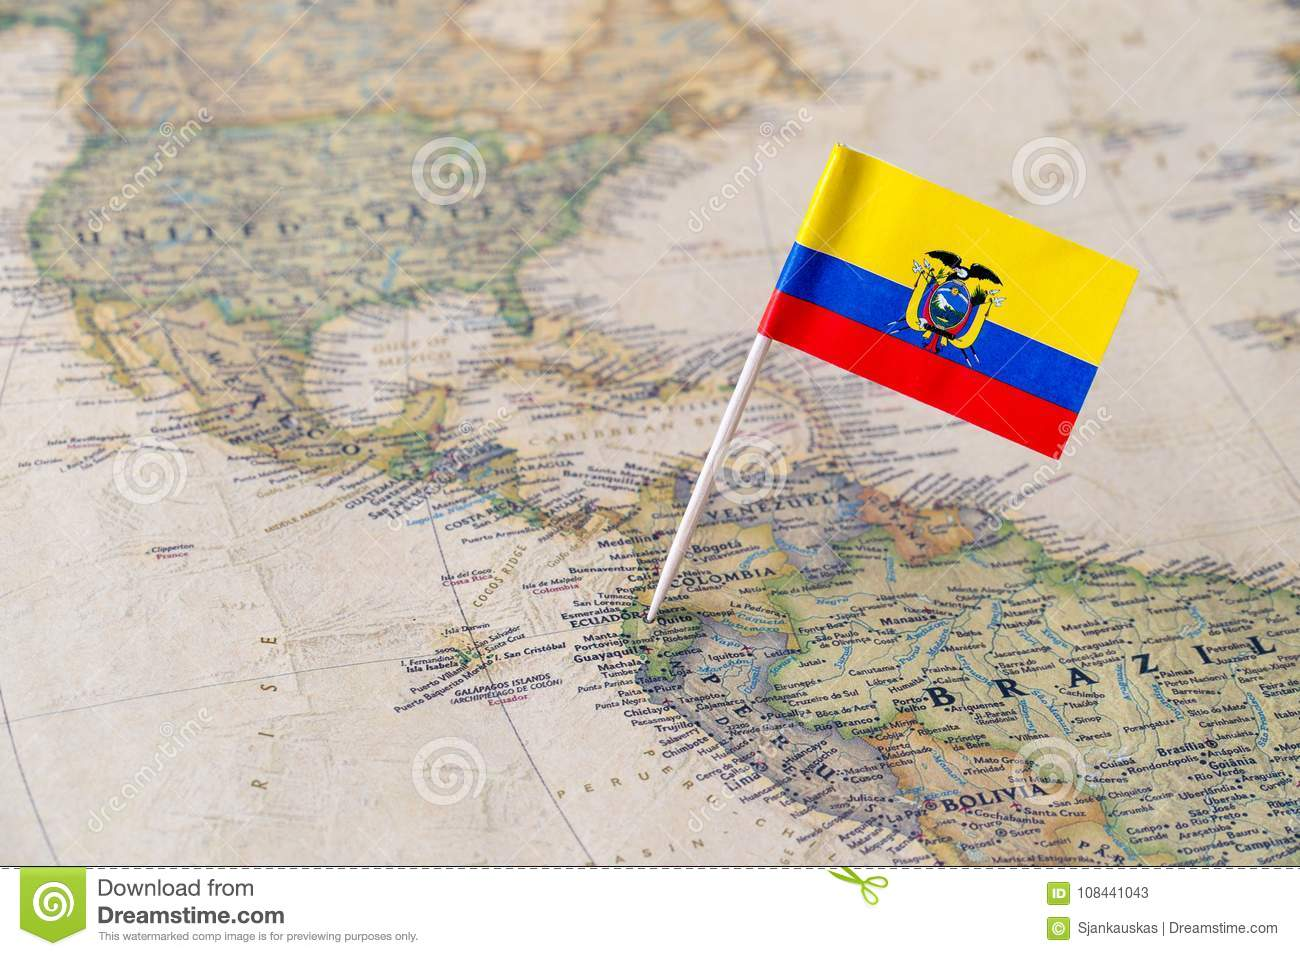 Ecuador flag pin on world map